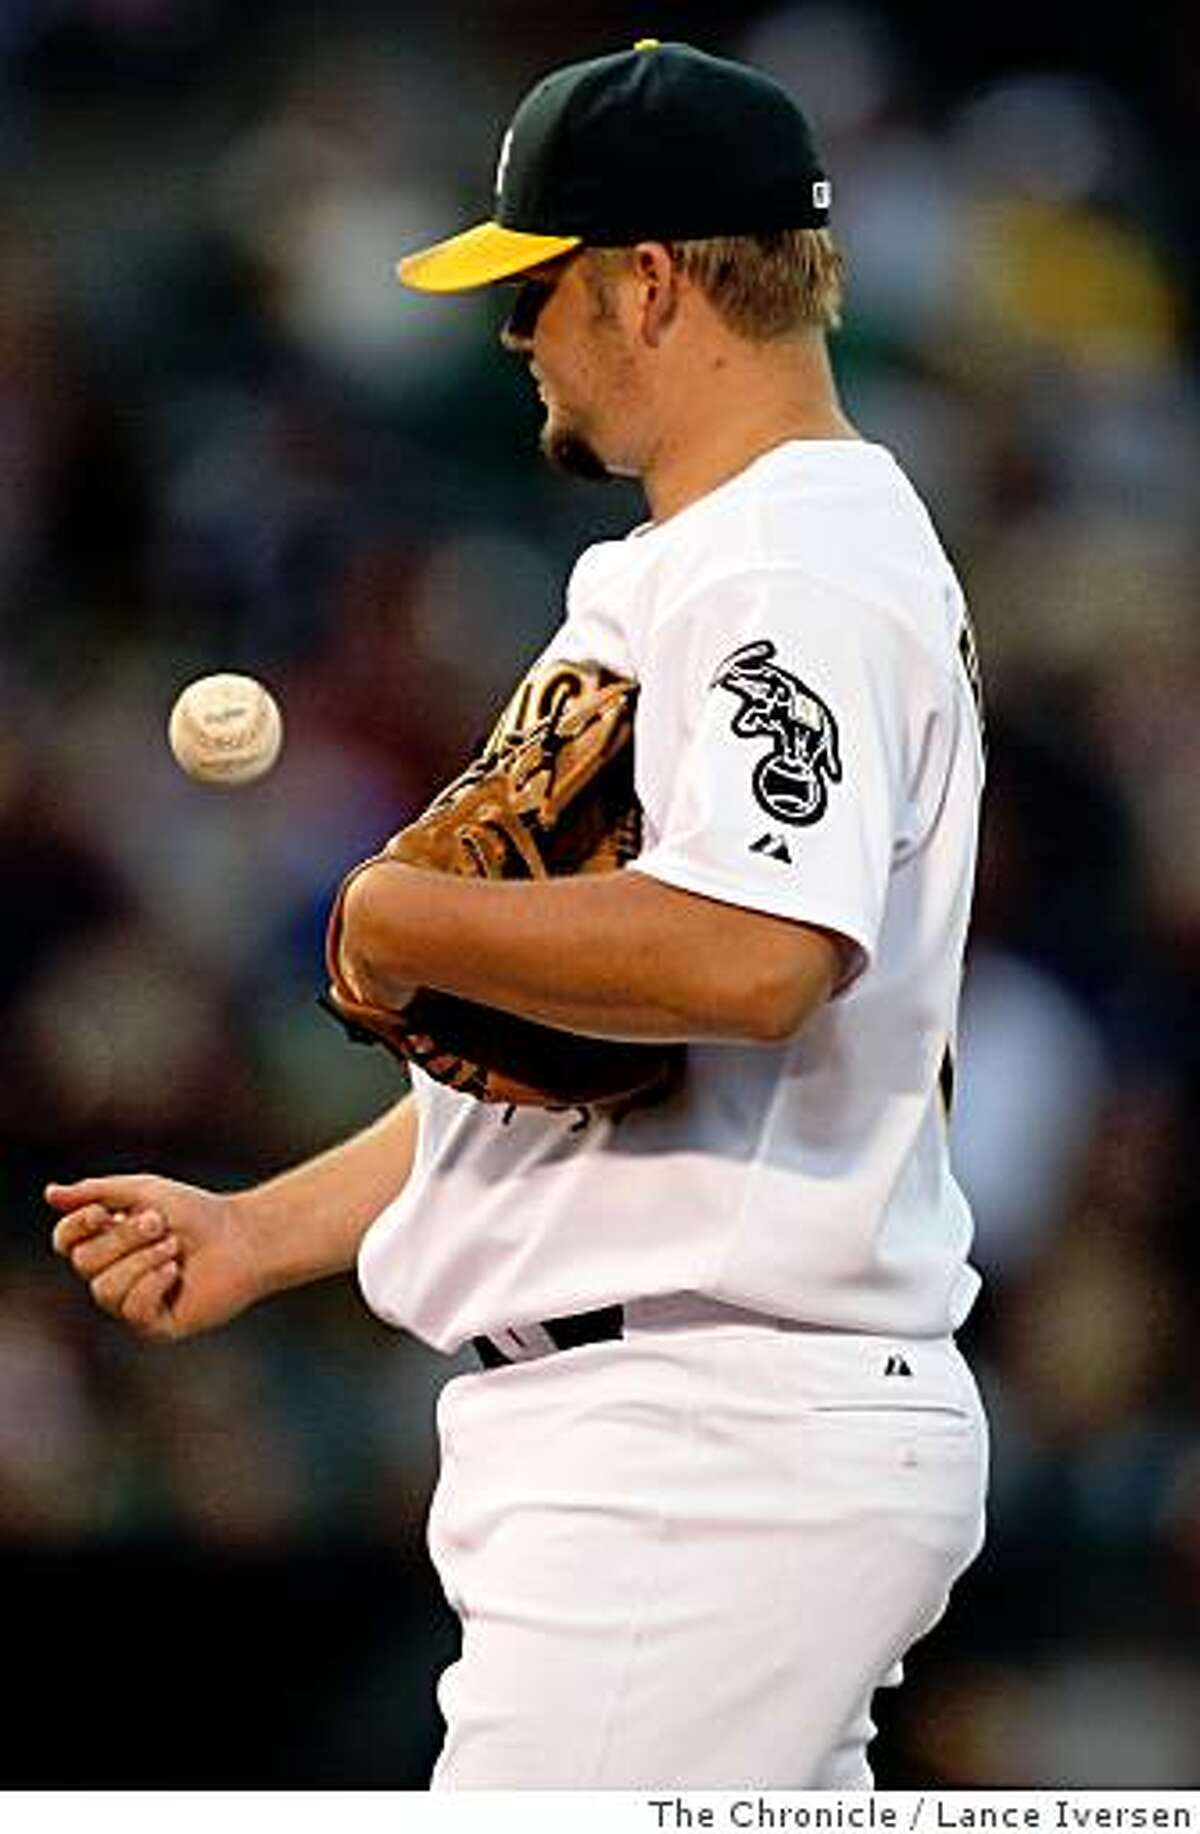 Oakland Athletics' starting pitcher Joe Blanton flips the ball between batters during their game with the Los Angeles Angels at McAfee Coliseum, in Oakland Calif., Friday, June 6, 2008. Photo by Lance Iversen / The Chronicle